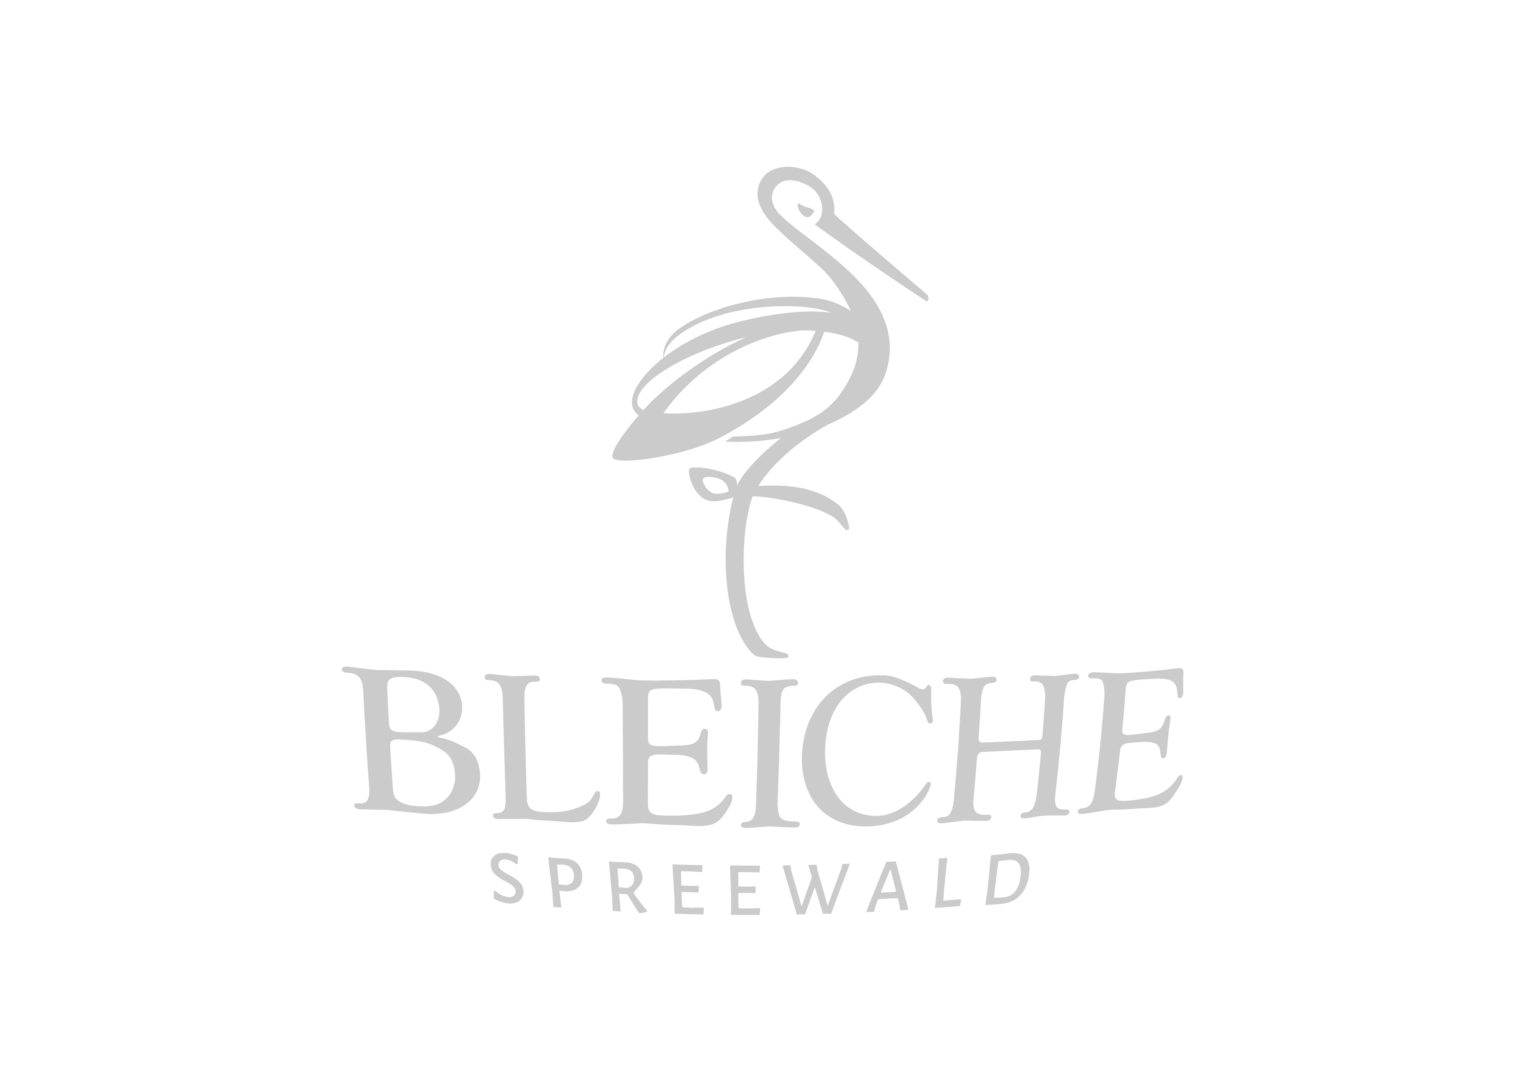 Bleiche Resort & Spa